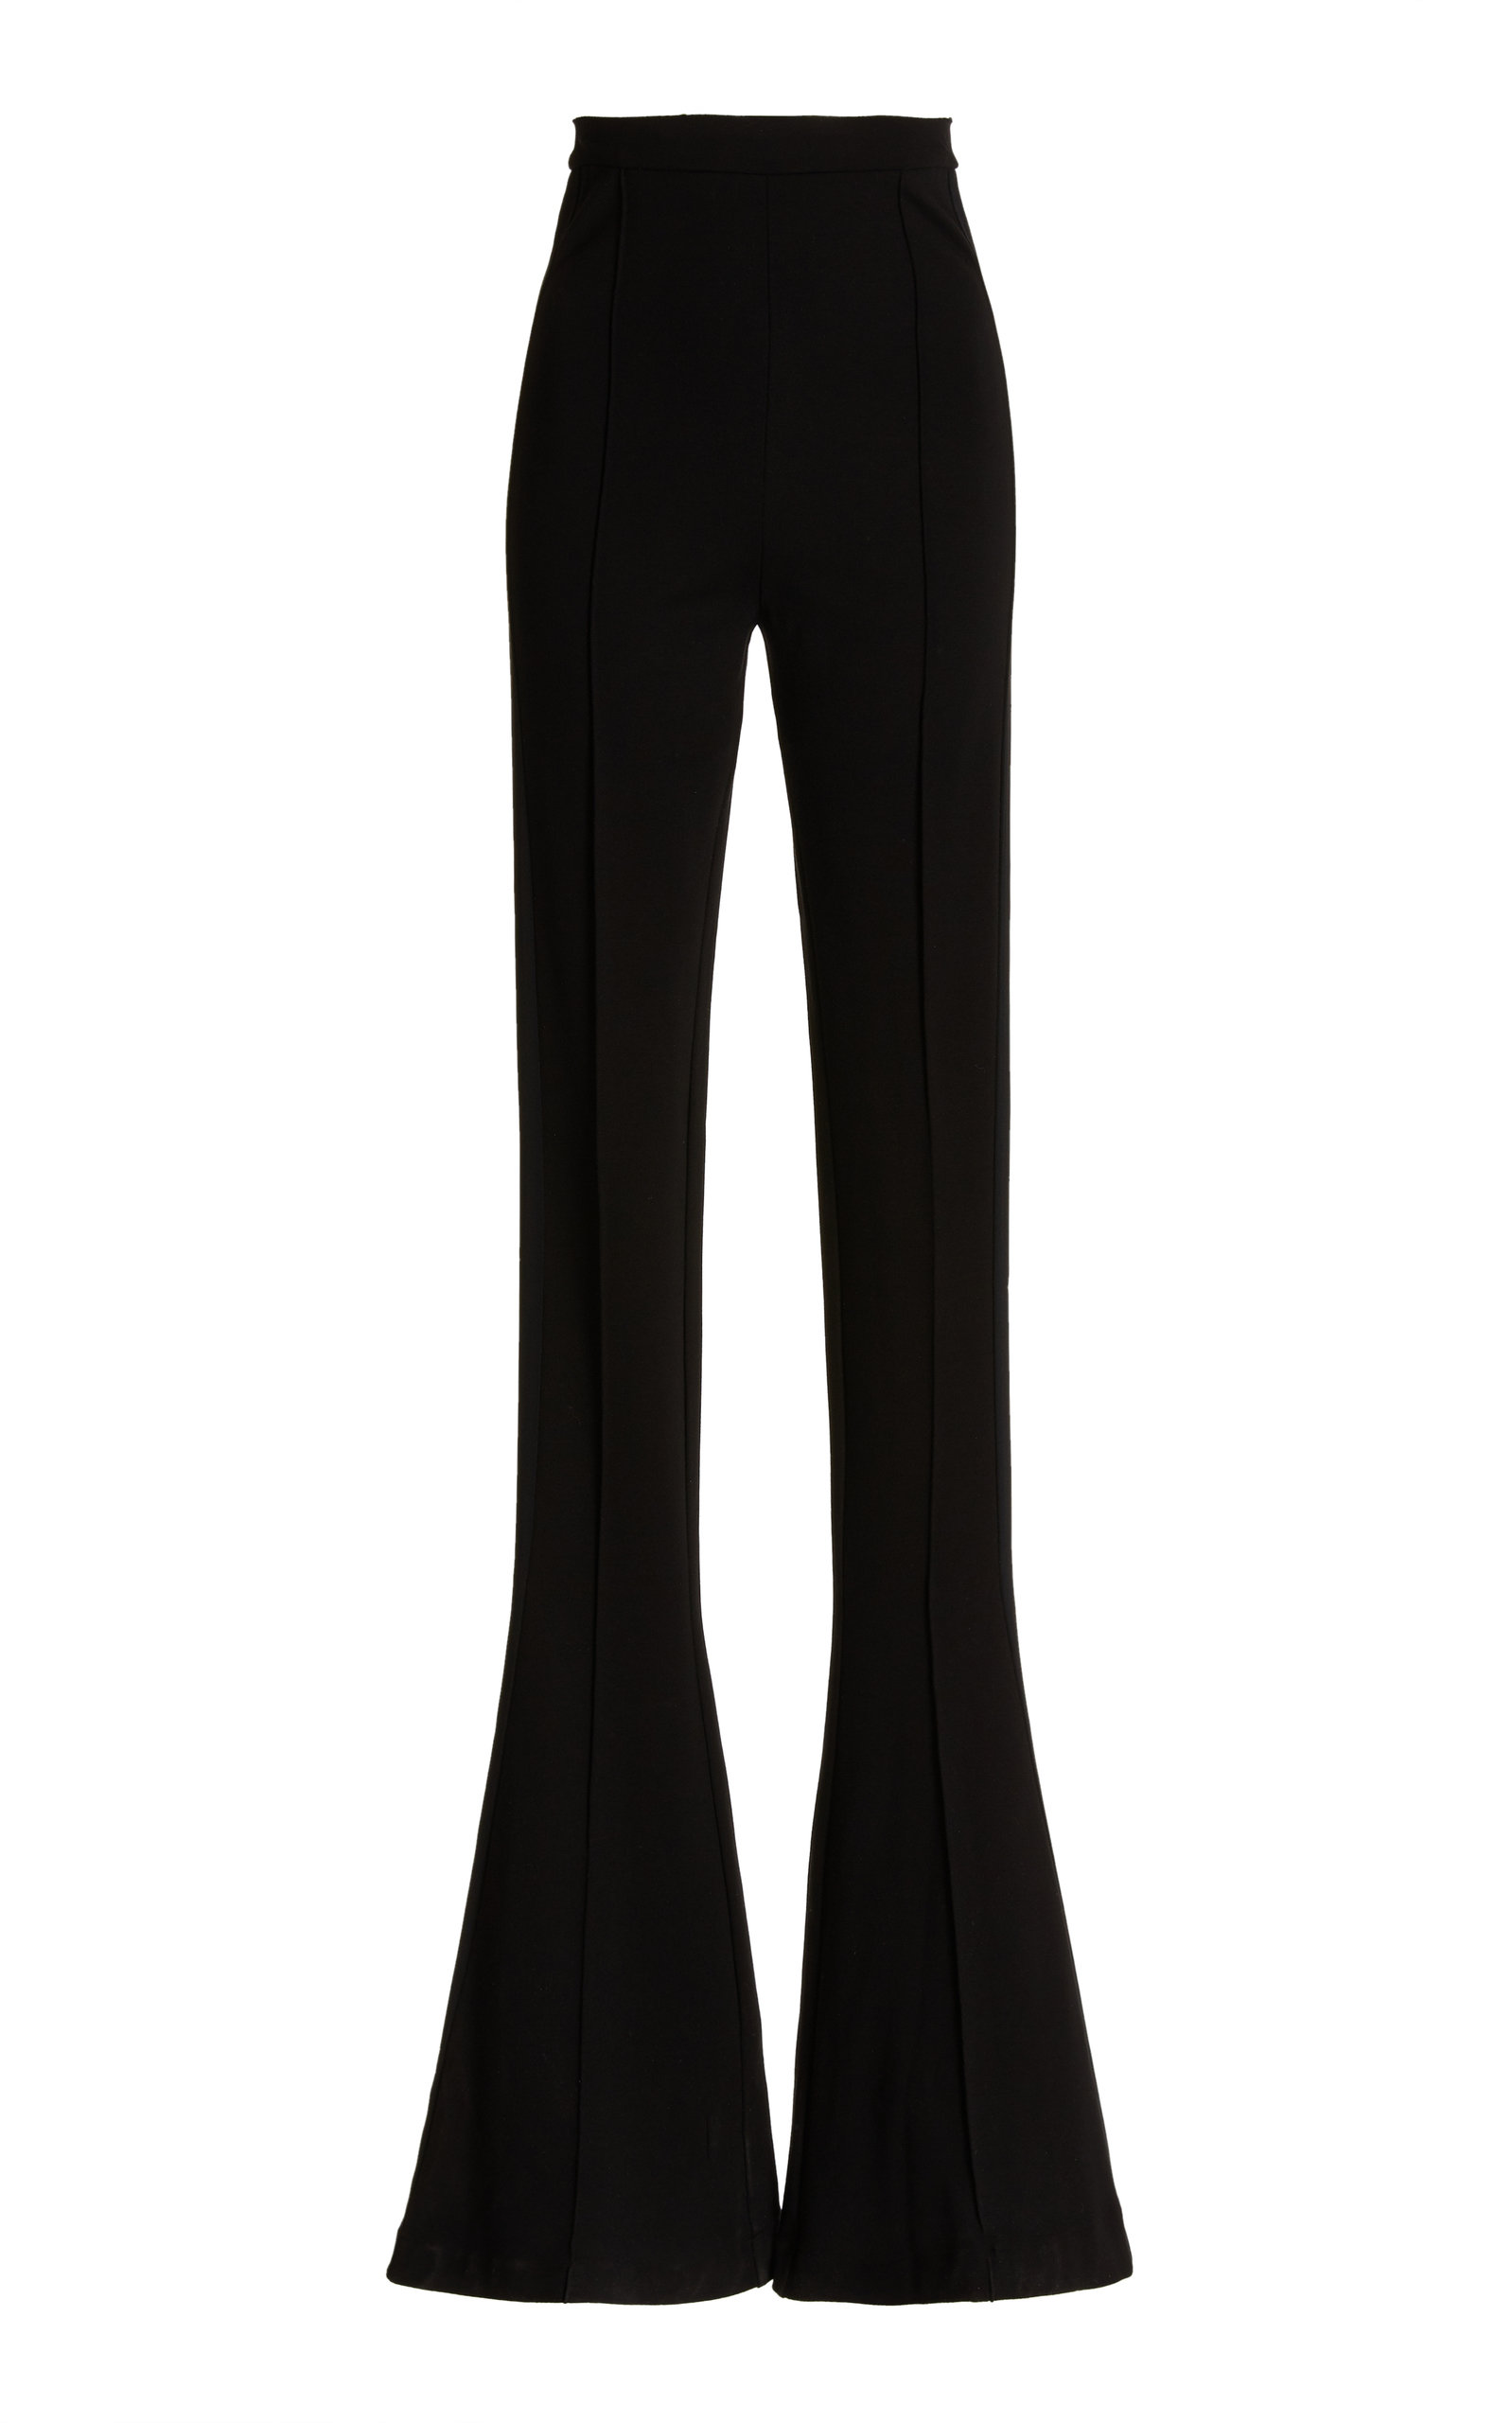 Women's High-Rise Flared Jersey Pants